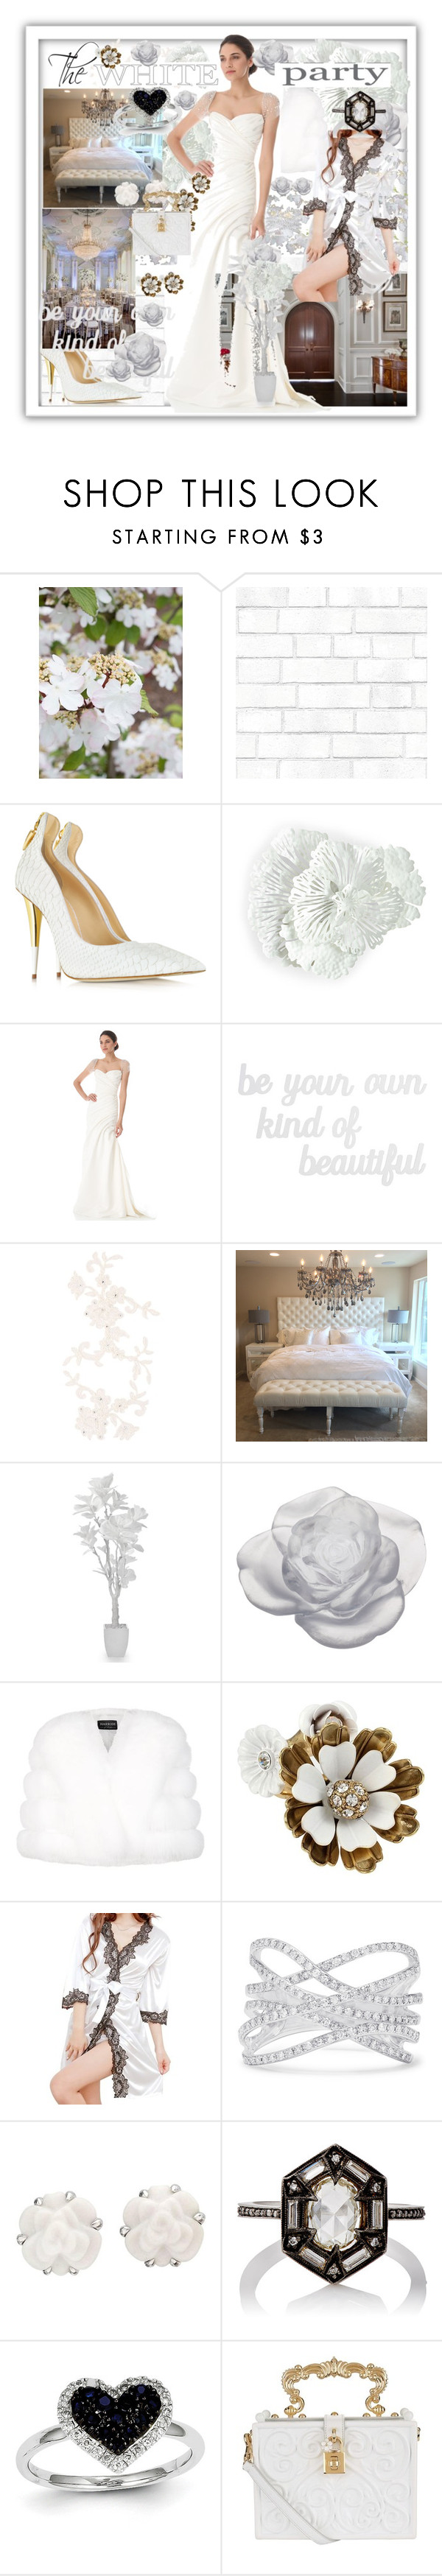 """""""The White Party"""" by jaymagic ❤ liked on Polyvore featuring Tempaper, Giuseppe Zanotti, WALL, Biltmore, Reem Acra, PBteen, MARBELLA, Daum, Harrods and Betsey Johnson"""